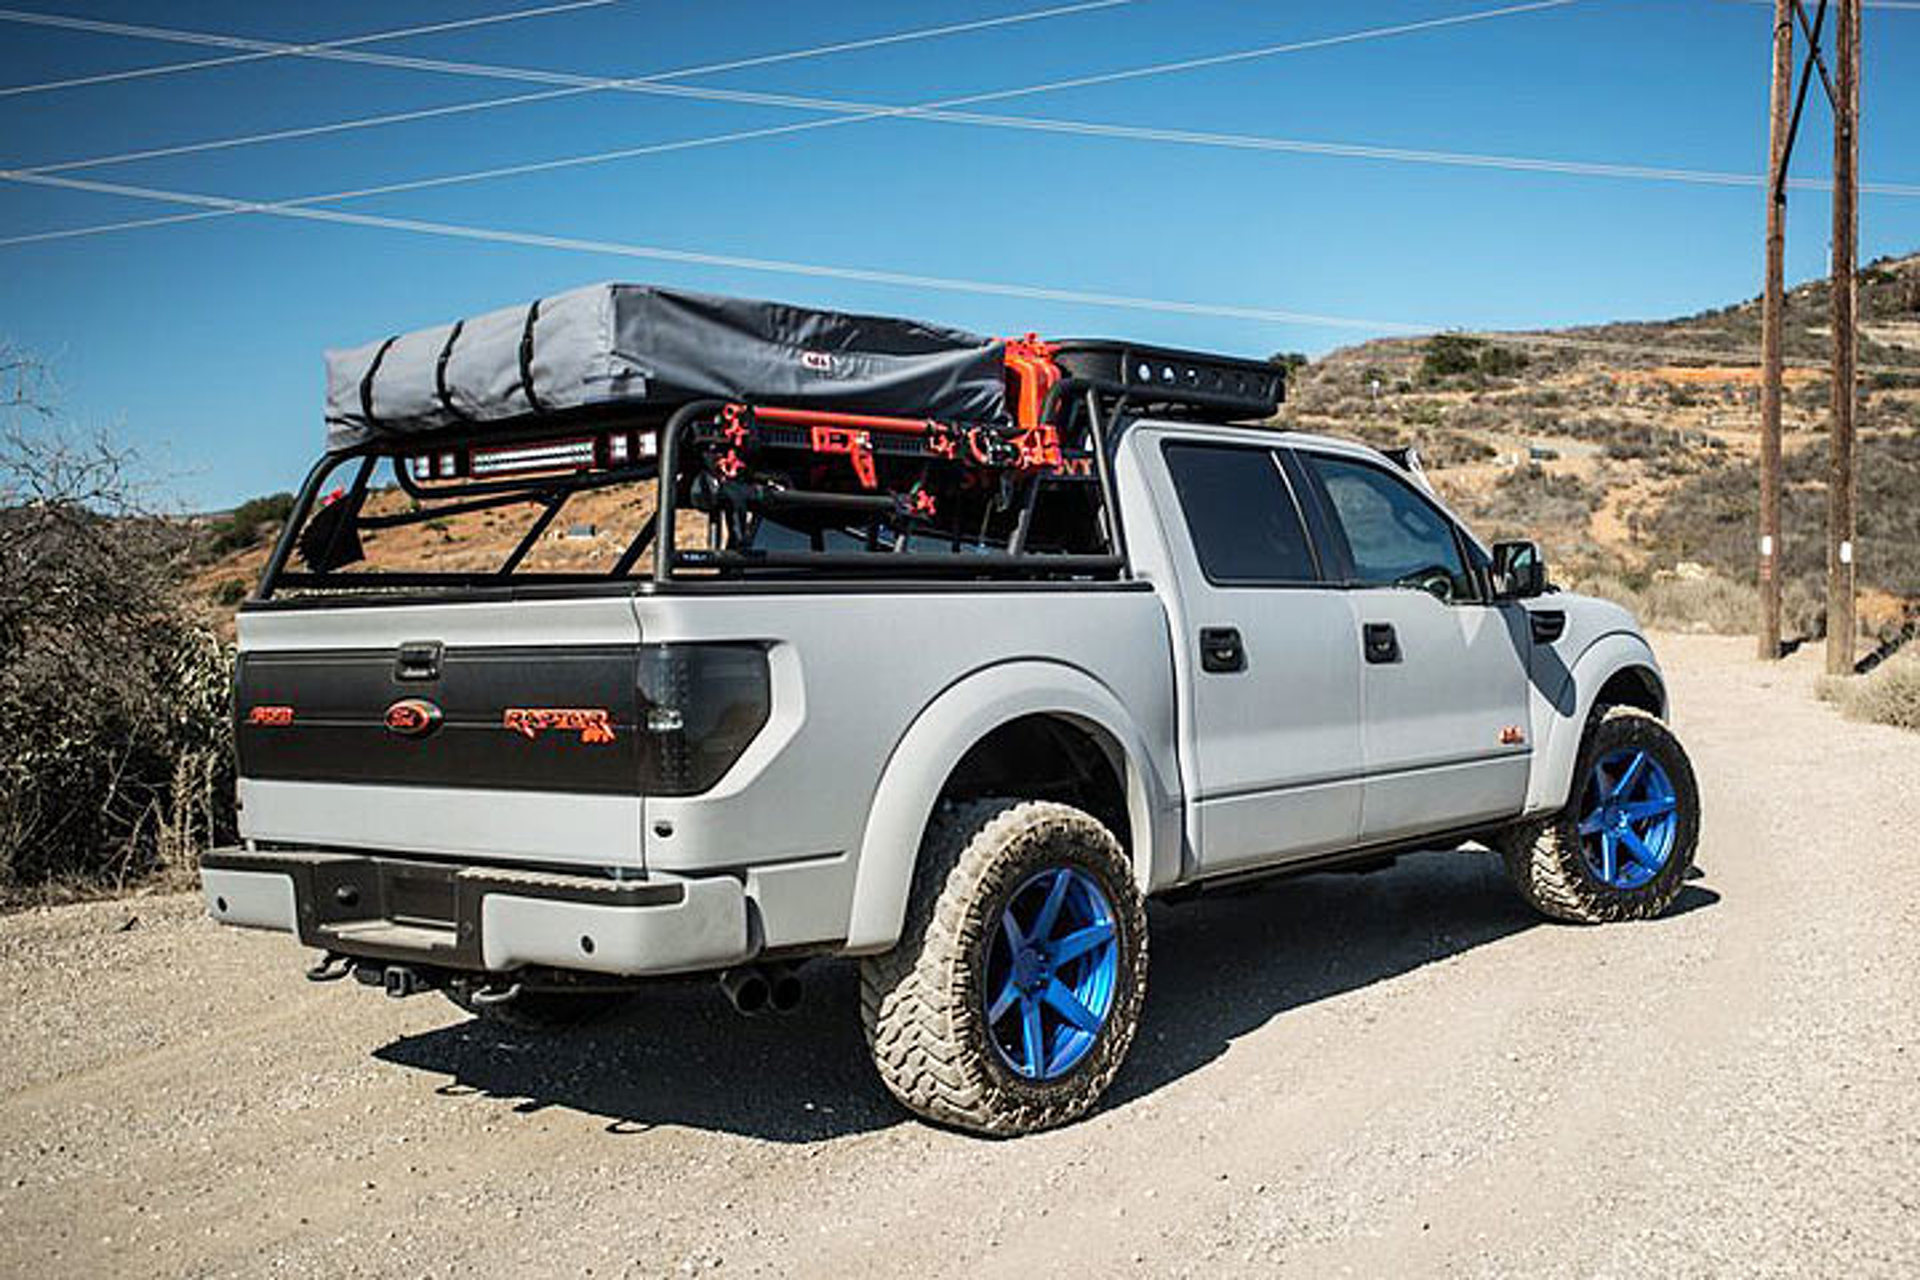 Ford Raptor 2013 >> This Ford Raptor is Now a 590-HP Camping Vehicle